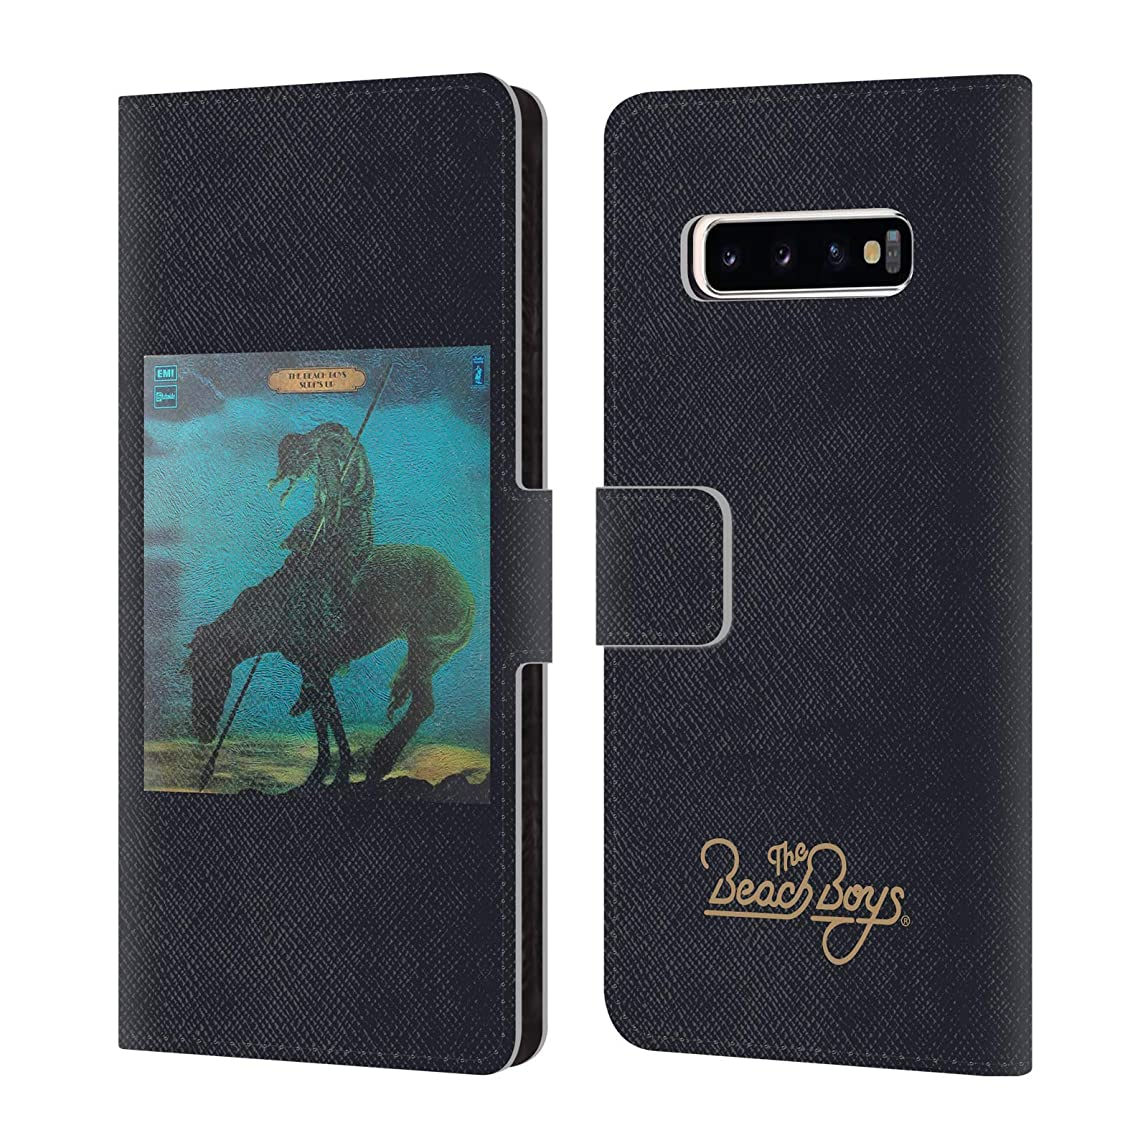 Official The Beach Boys Surfs Up Album Cover Art Leather Book Wallet Case Cover Compatible for Samsung Galaxy S10+ / S10 Plus lsctvvf295666